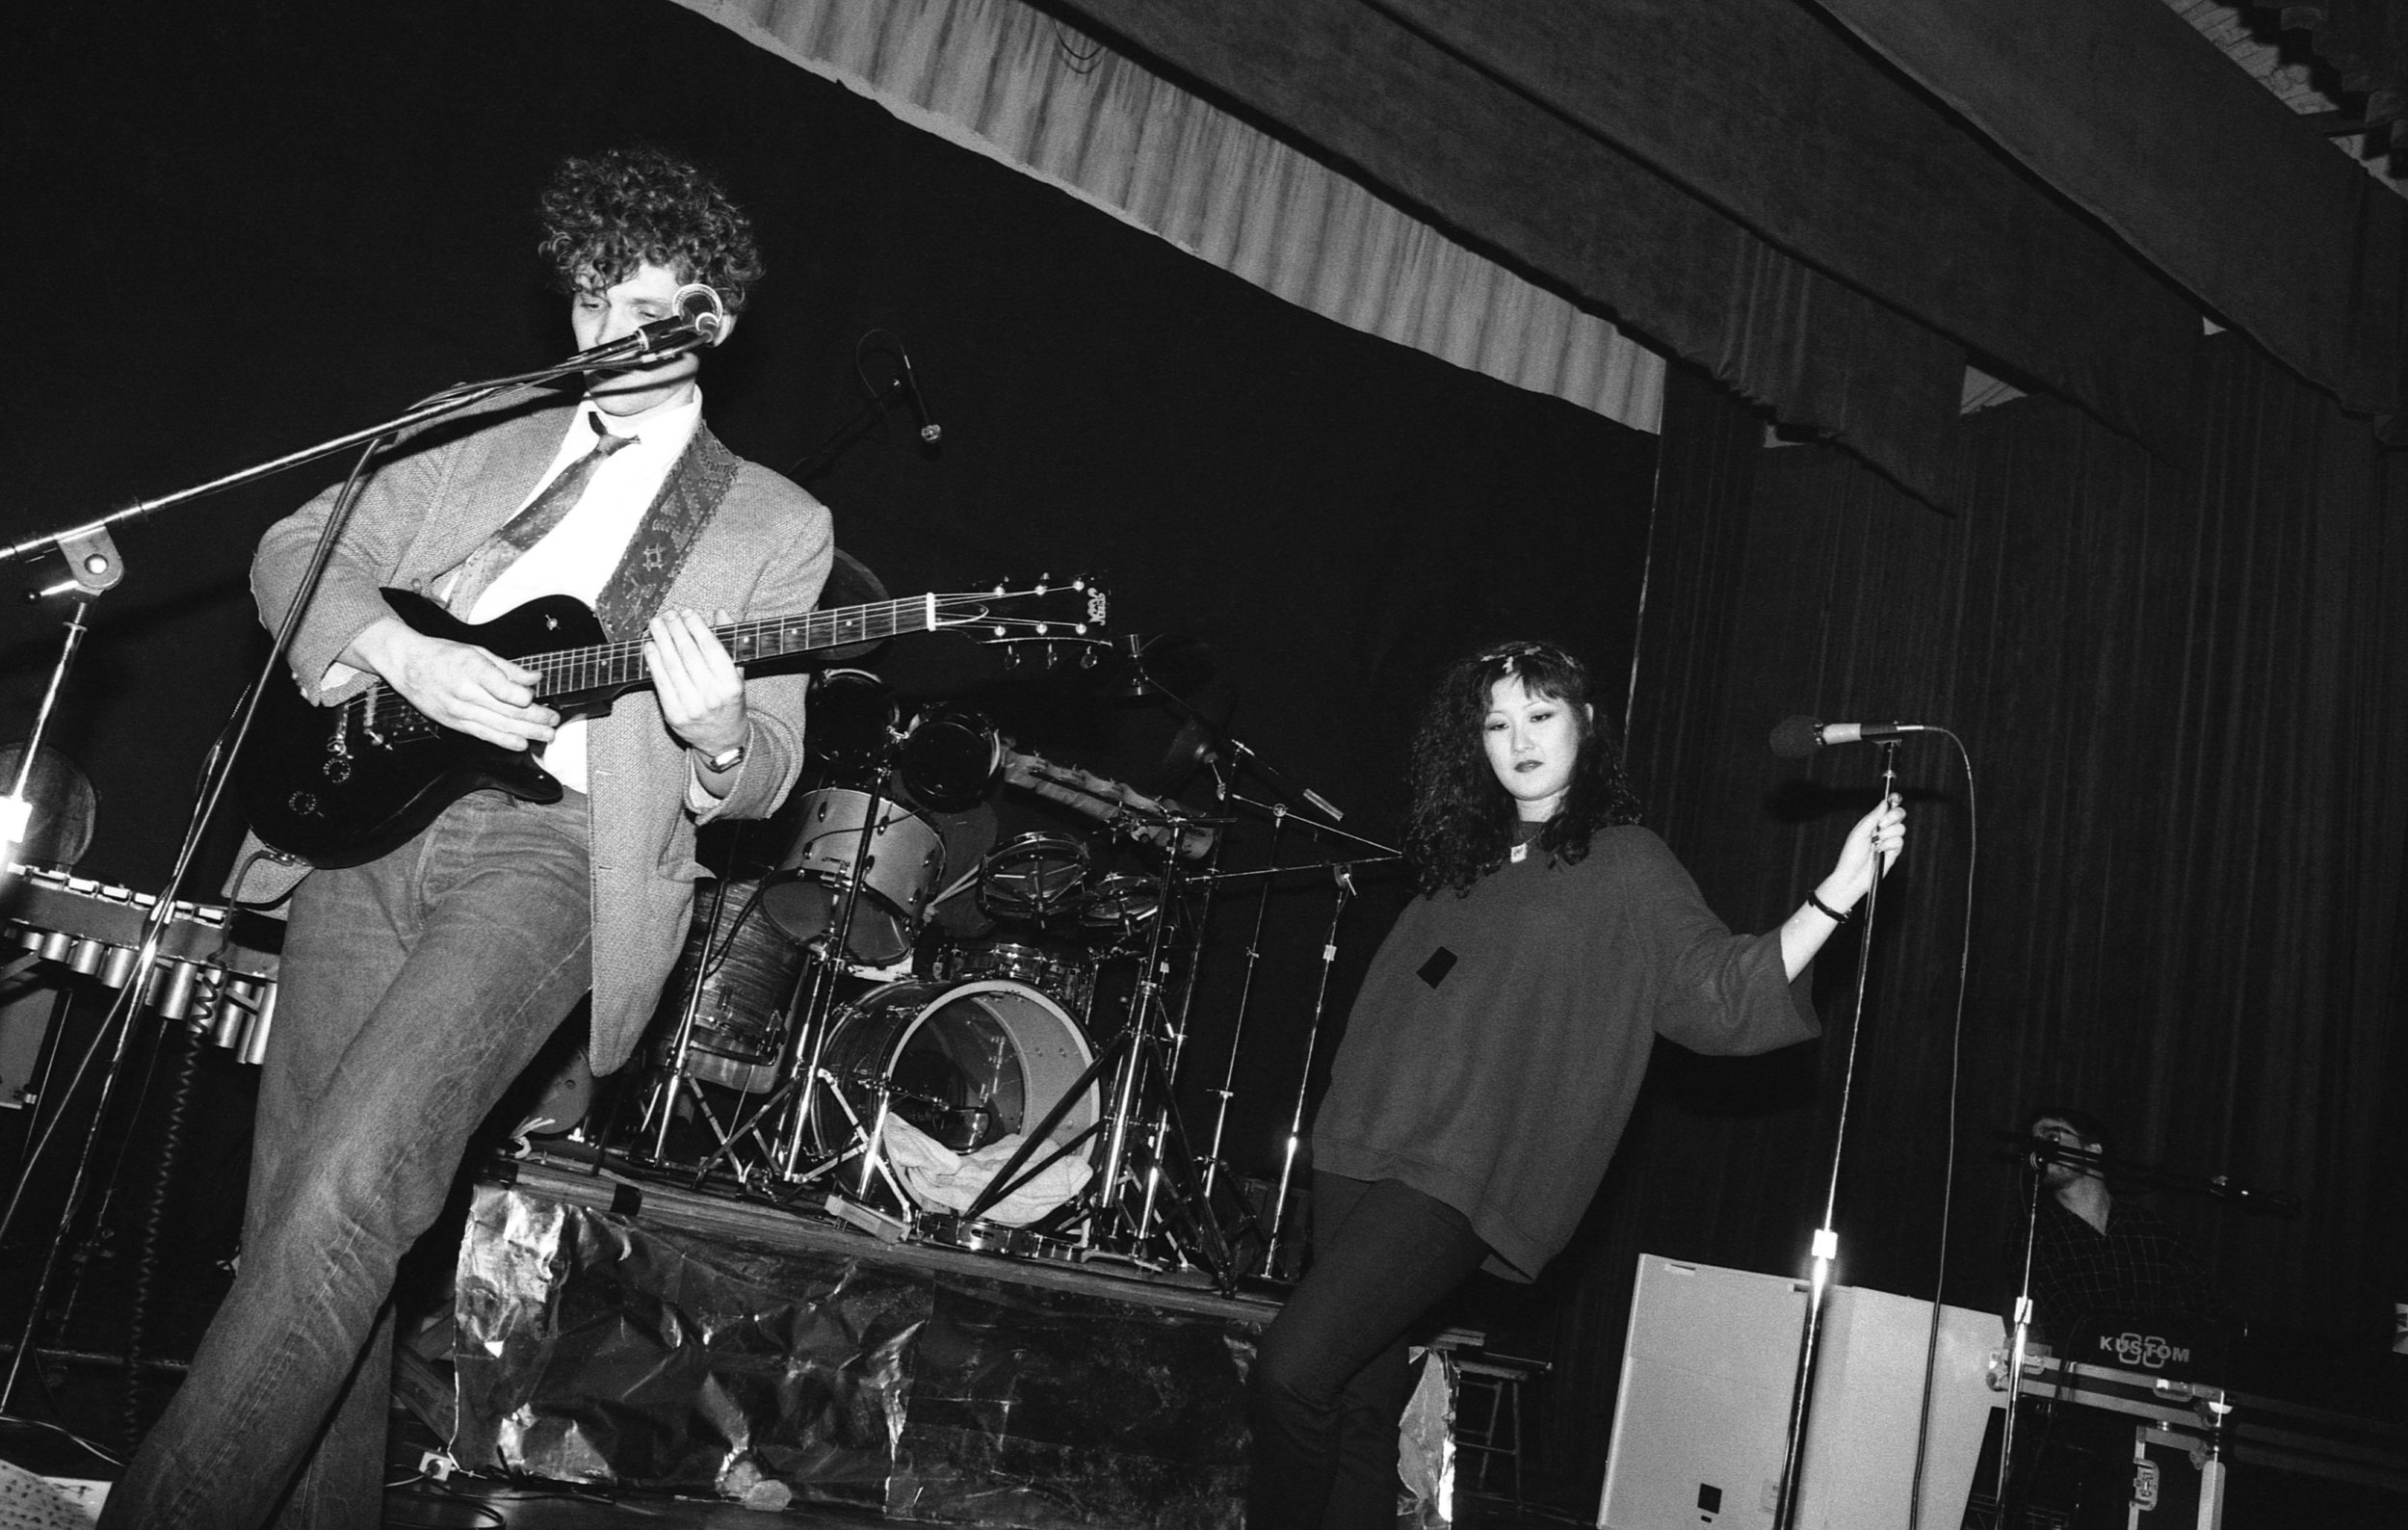 Fibonaccis performing at the Ukrainian Cultural Center, Los Angeles, 1982. (1/7)